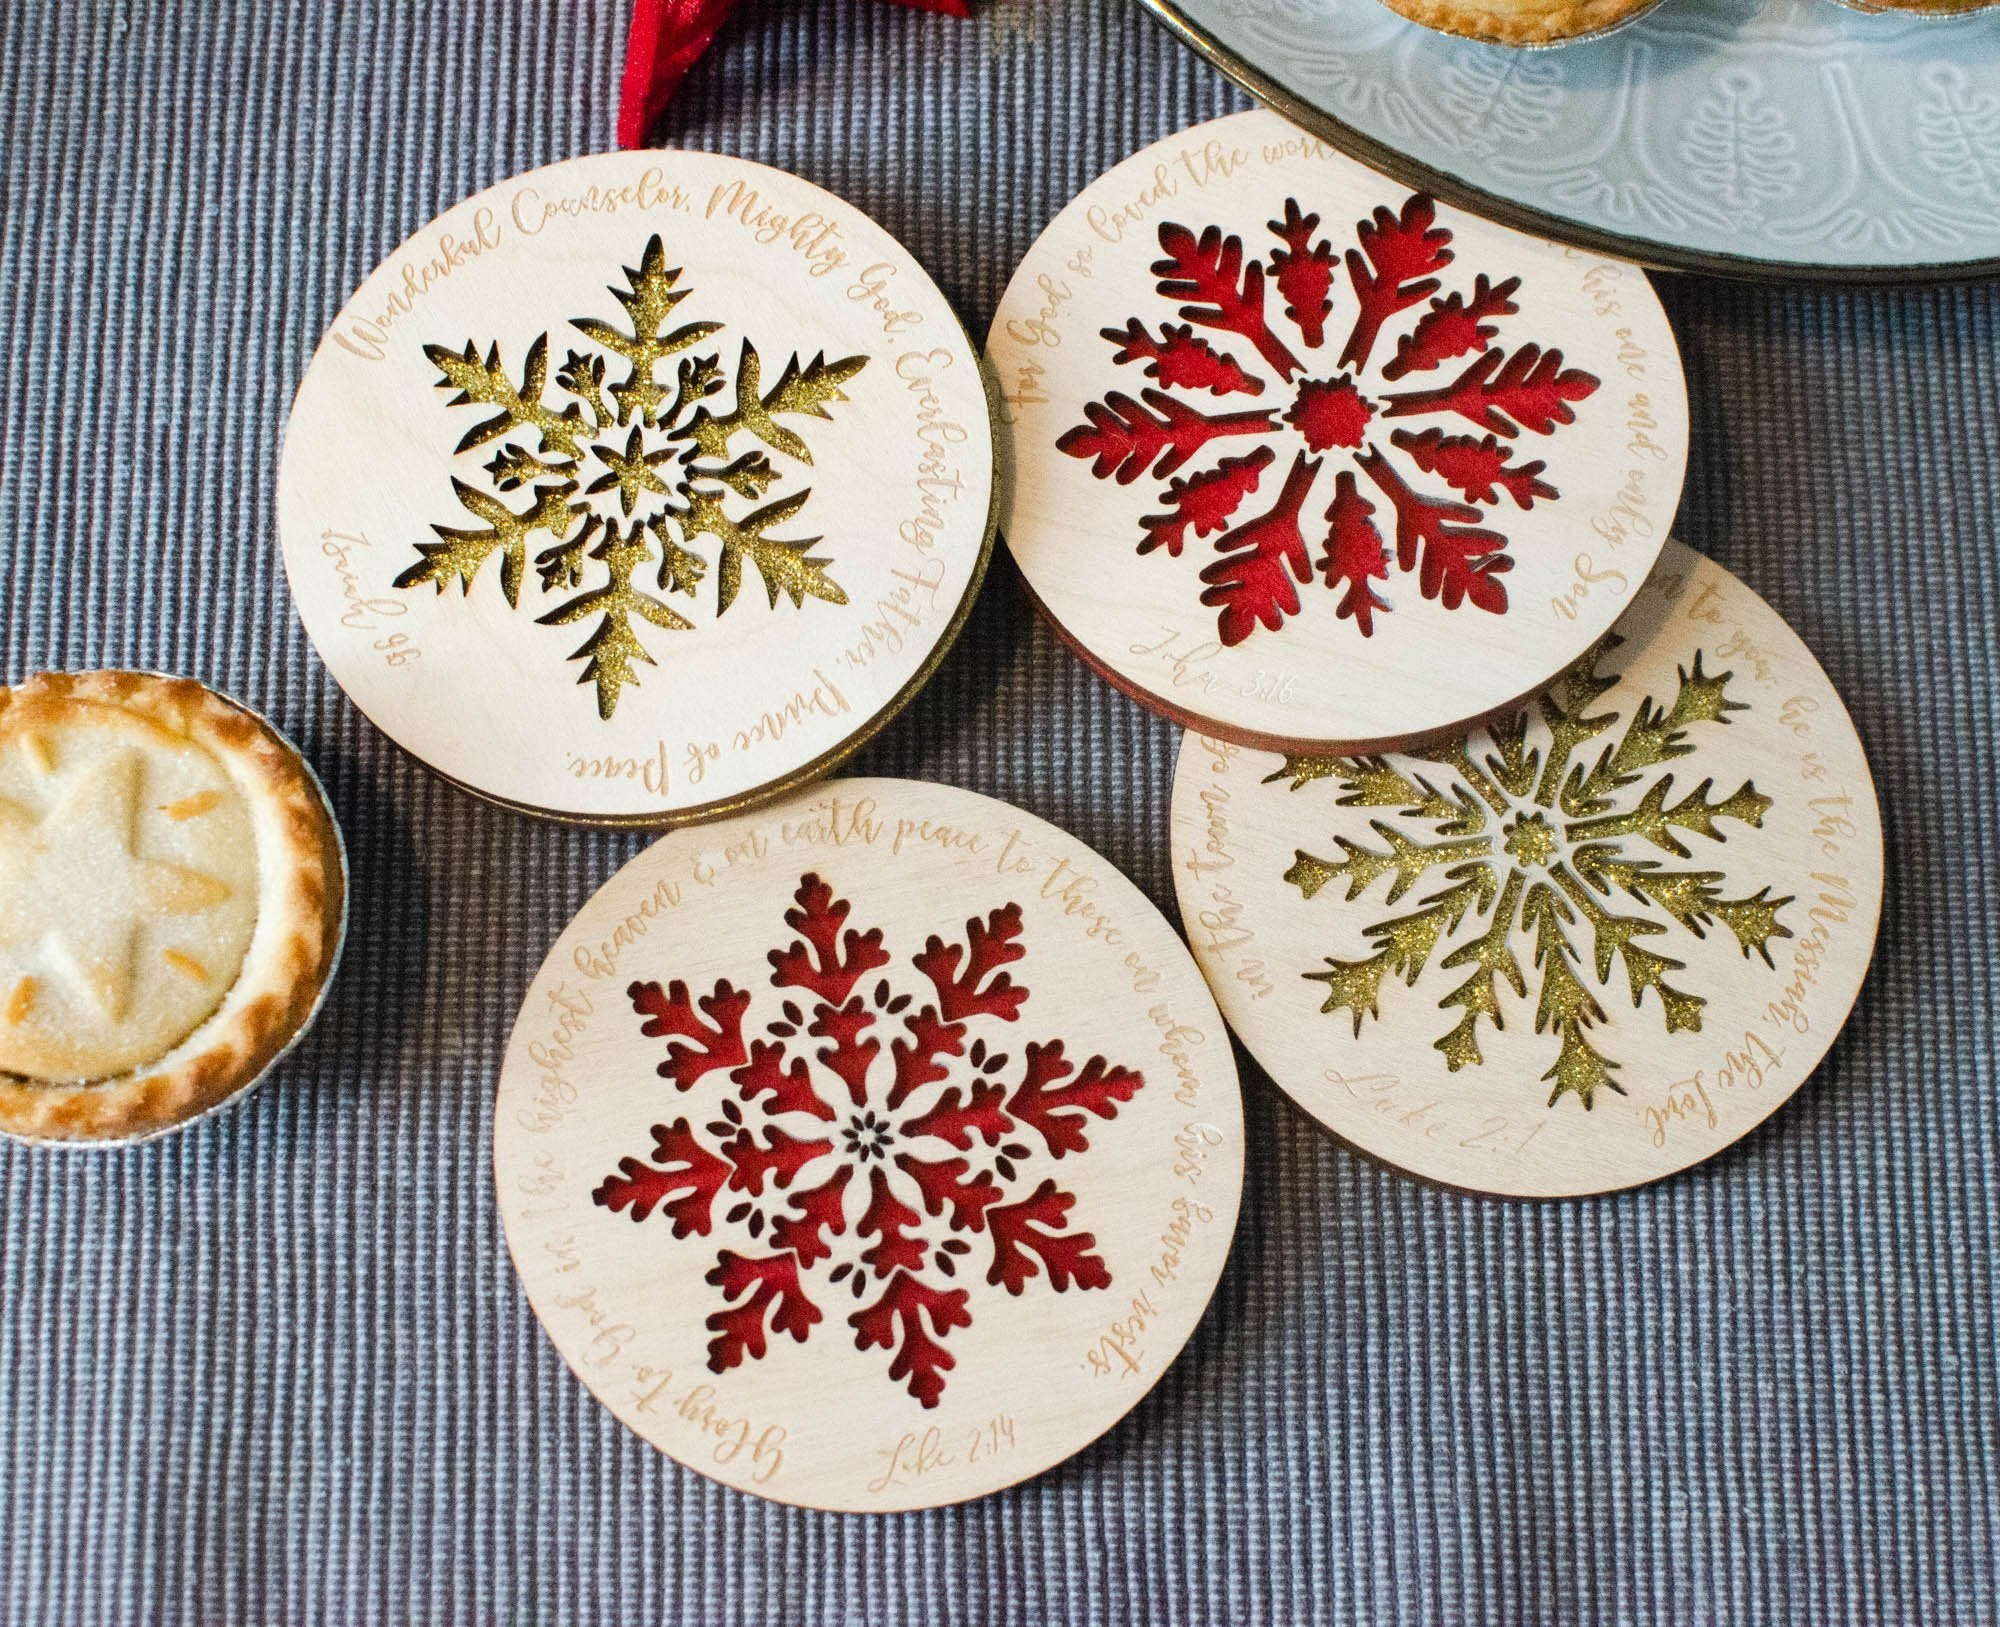 Set of 4 Christmas verse coaster